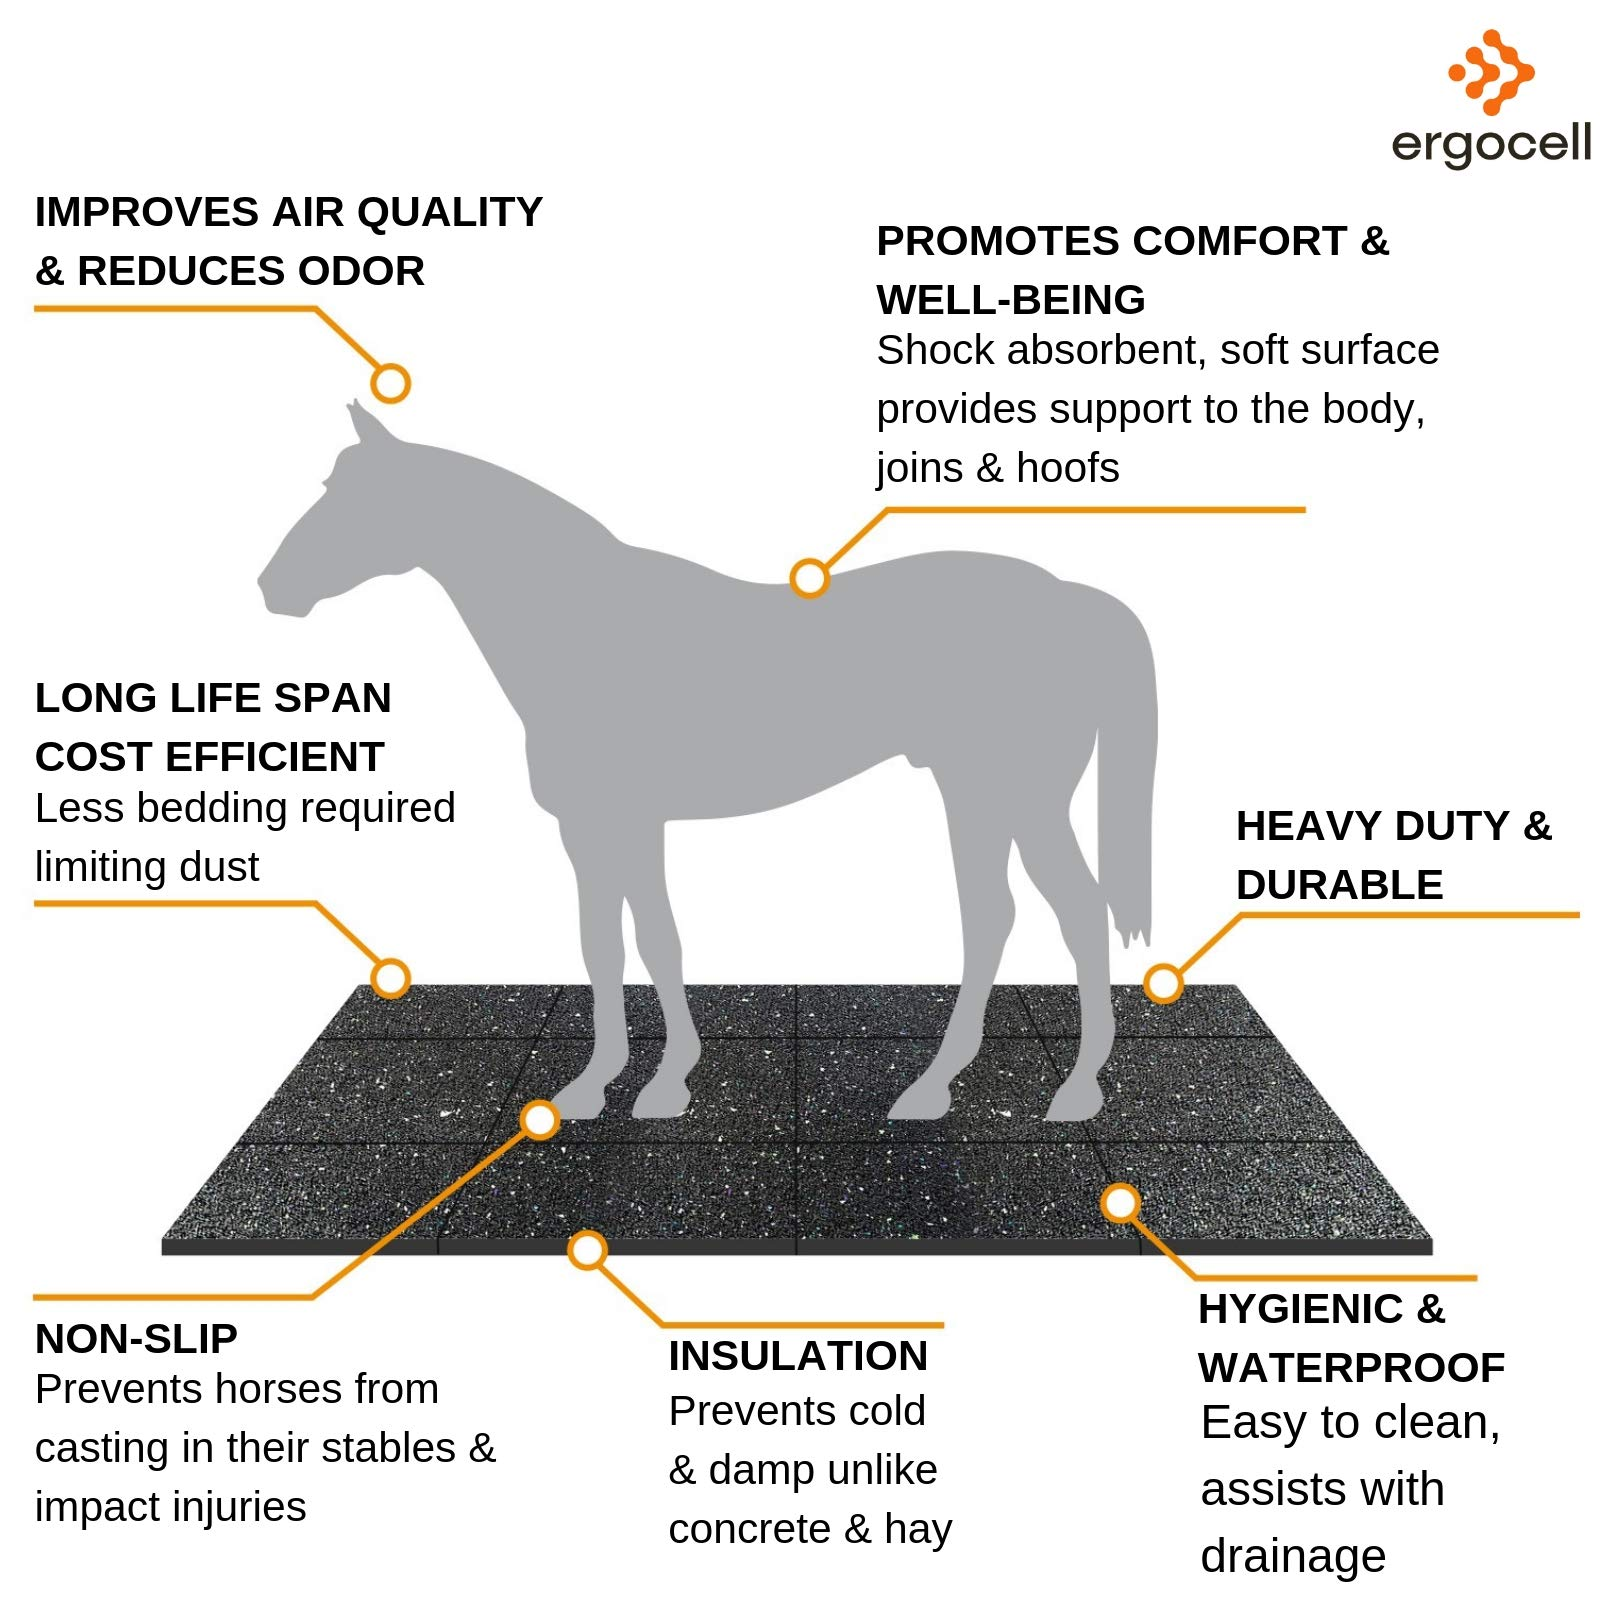 Ergocell Recycled Rubber Floor Mat – Shock Absorbent Gym Mat Flooring & Horse Stall Mat | Three Thicknesses, Multiple Sizes | 3/8'' - 2' x 7' by Ergocell (Image #8)